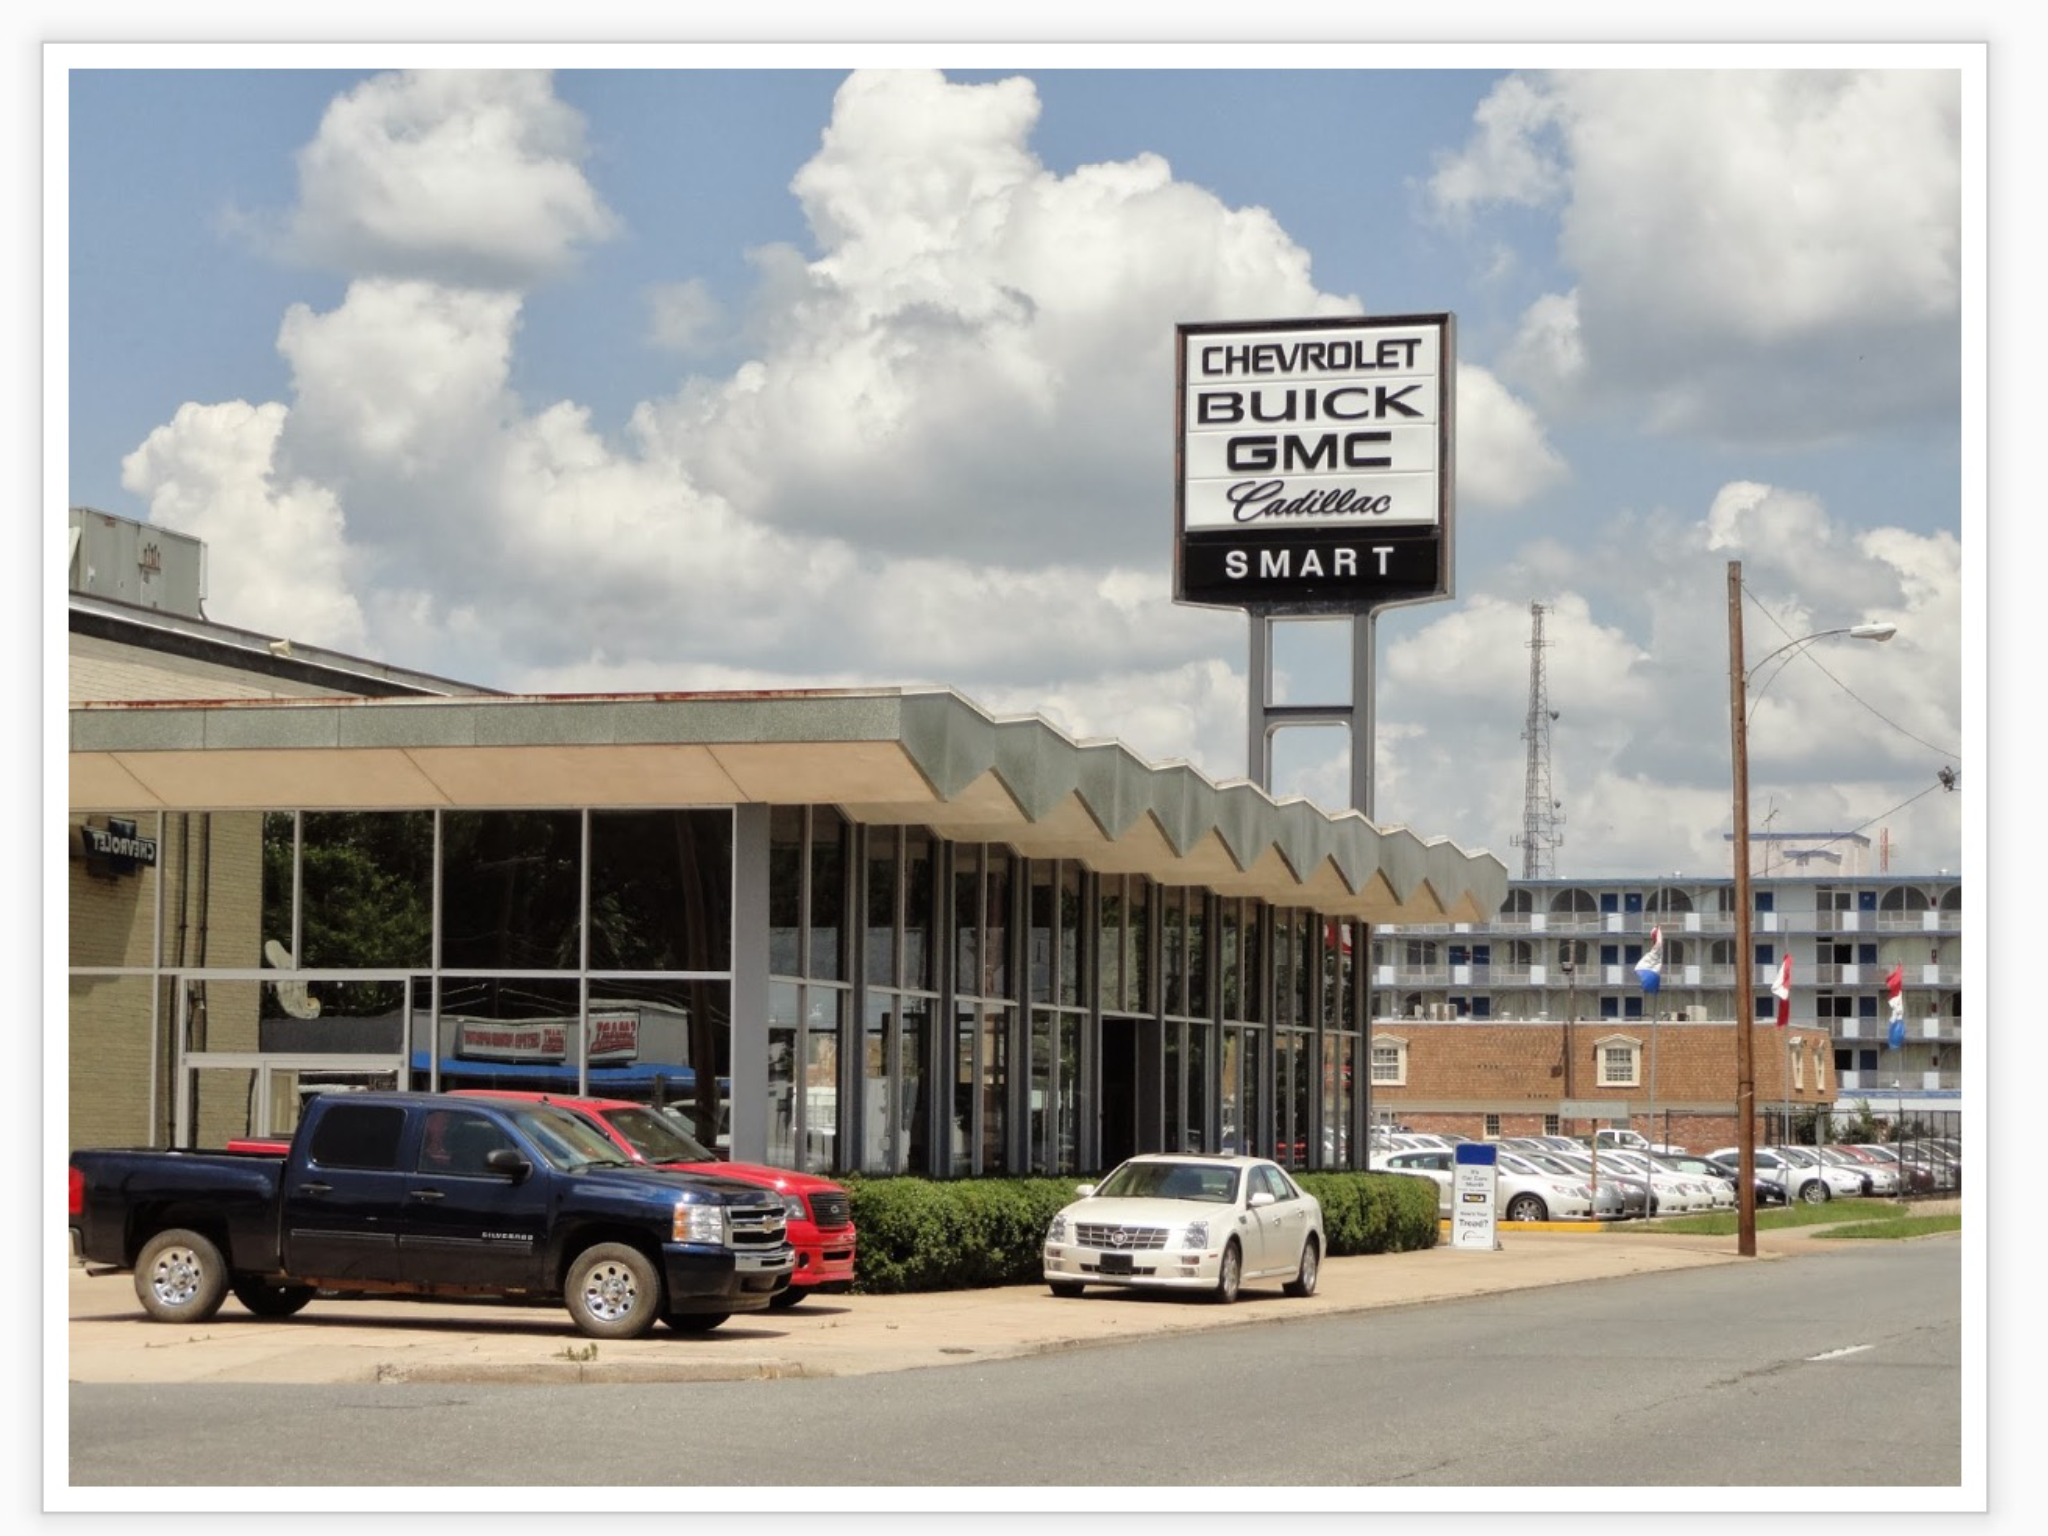 Smart Chevrolet Dealership Pine Bluff Ar Moved To White Hall Ar 2014 Still Sell Used Vehicles At This Location Pine Bluff Chevrolet Dealership Chevrolet